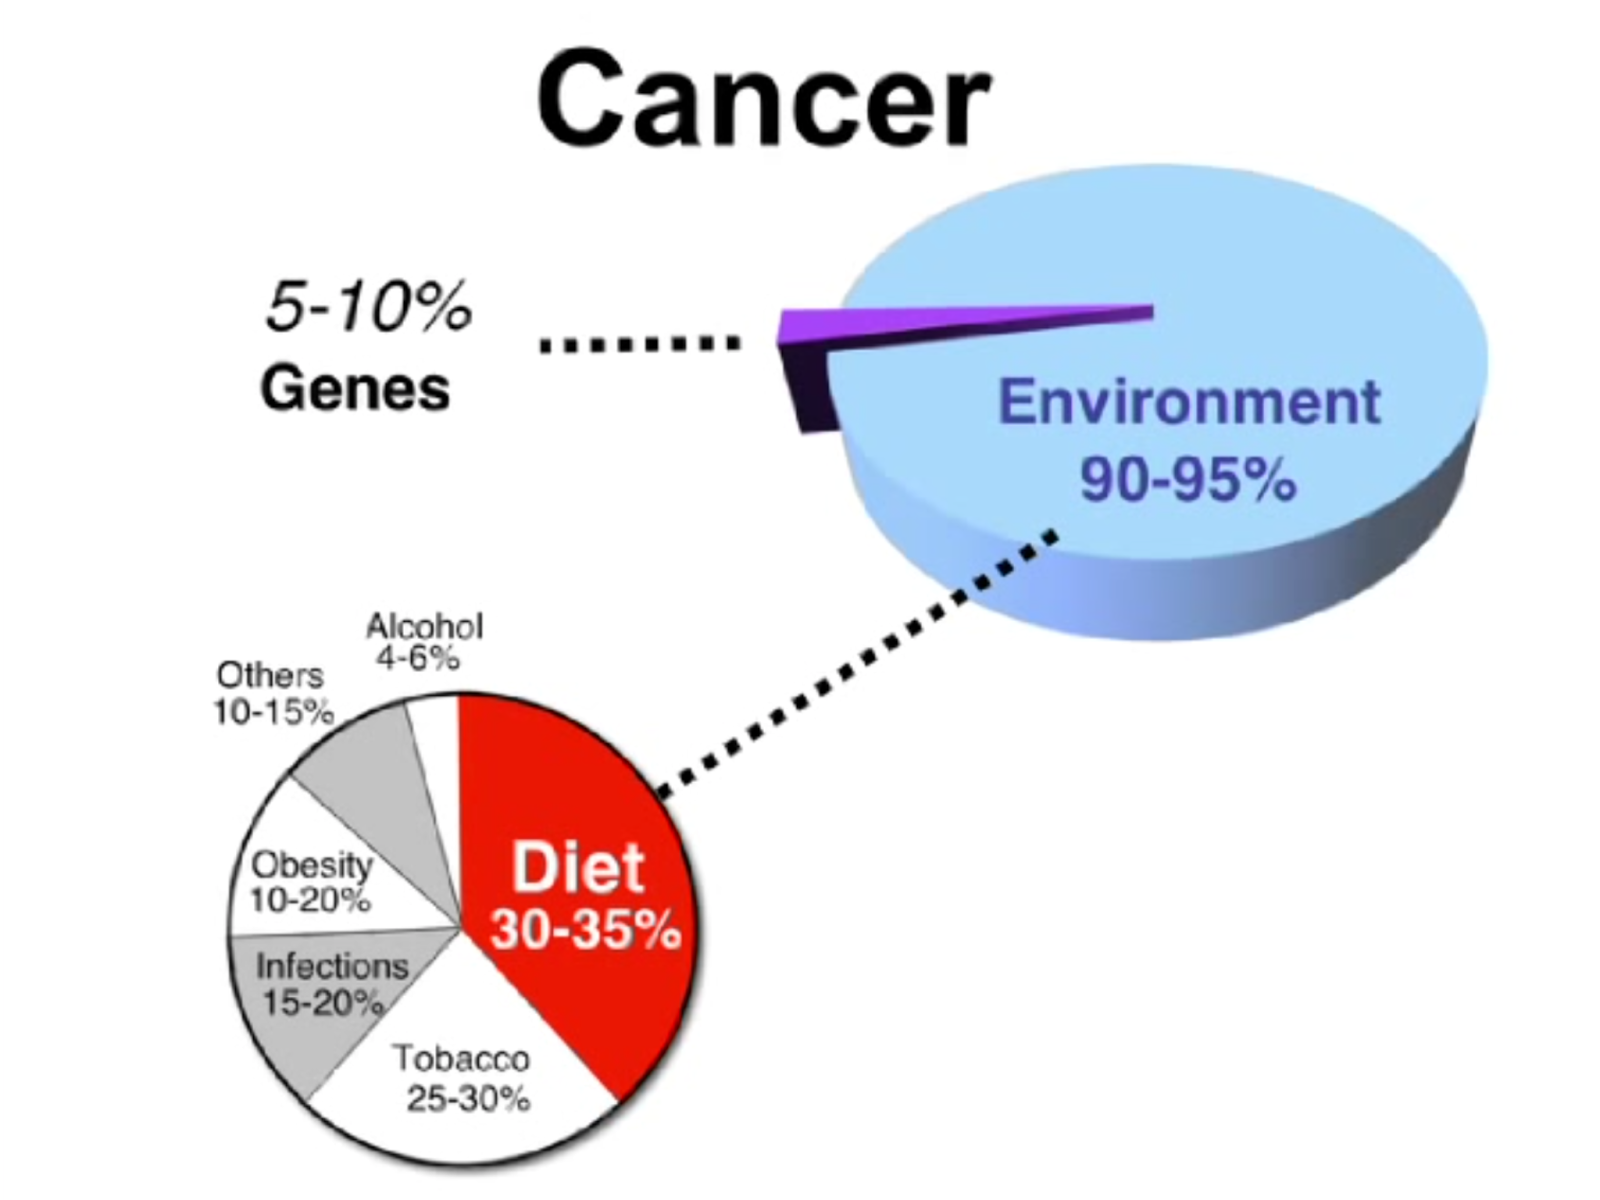 URBAN MALNUTRITION: Cancer Research Pie Chart Showing the Causes of Cancer